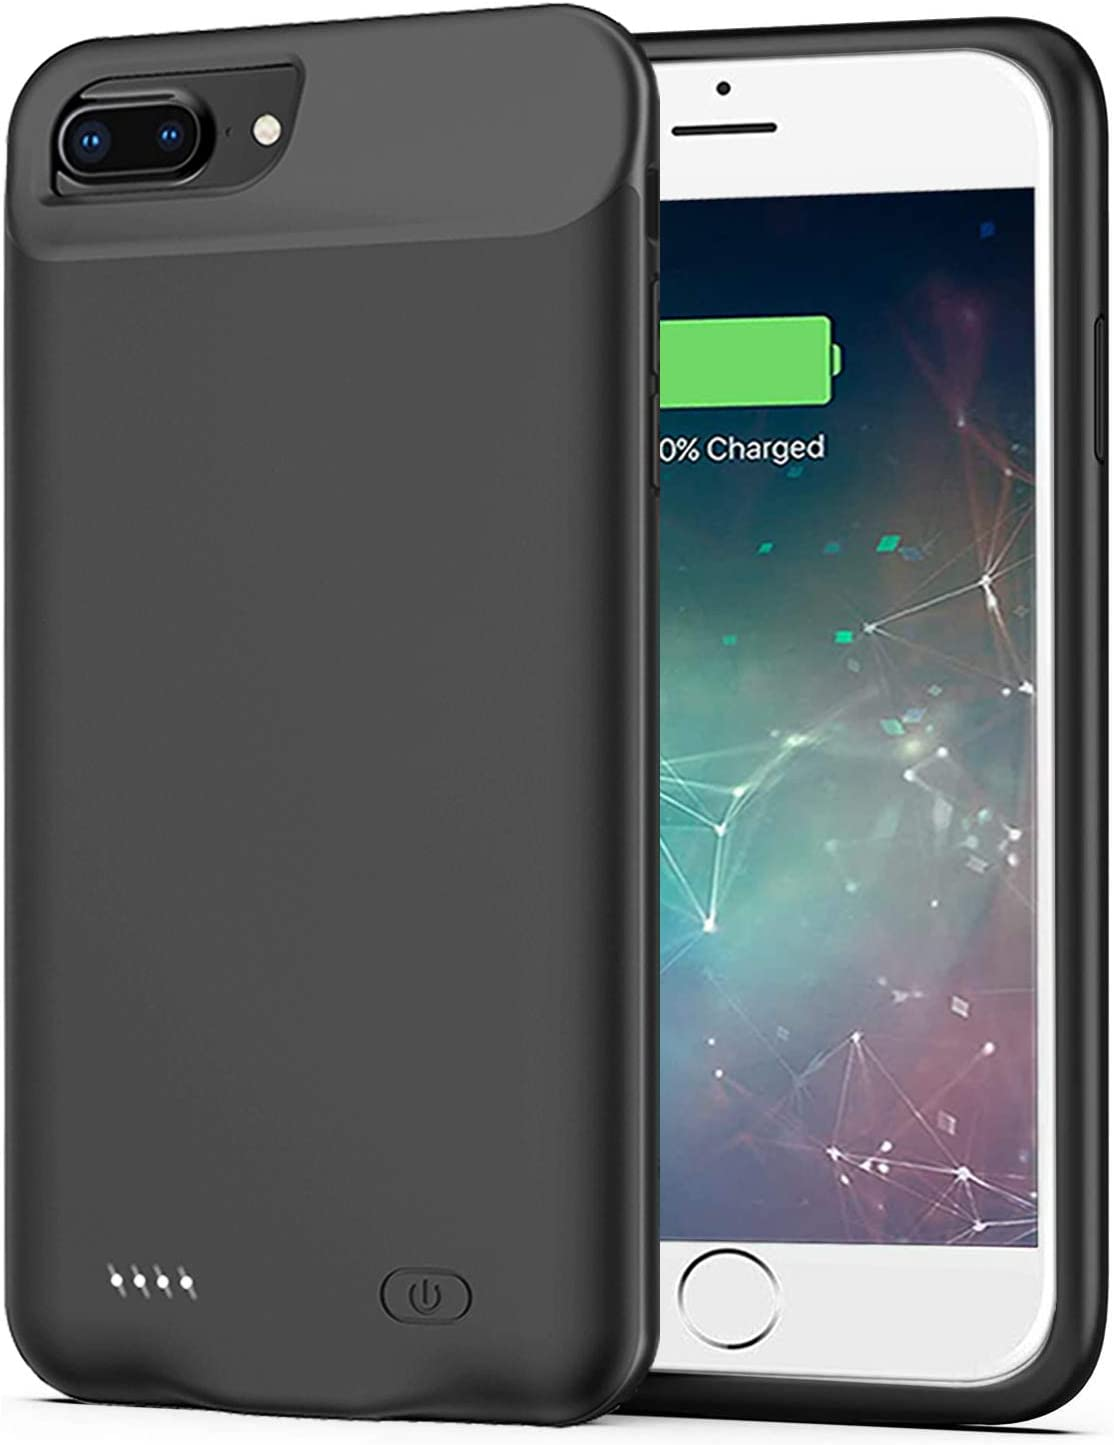 Battery Case for iPhone 8 Plus/7 Plus/6s Plus/6 Plus,Upgraded 10000mAh Charging Case Rechargeable Extended Battery Pack for iPhone 8 Plus/7 Plus/6 Plus/6s Plus (5.5 inch) Charger Case (Black)